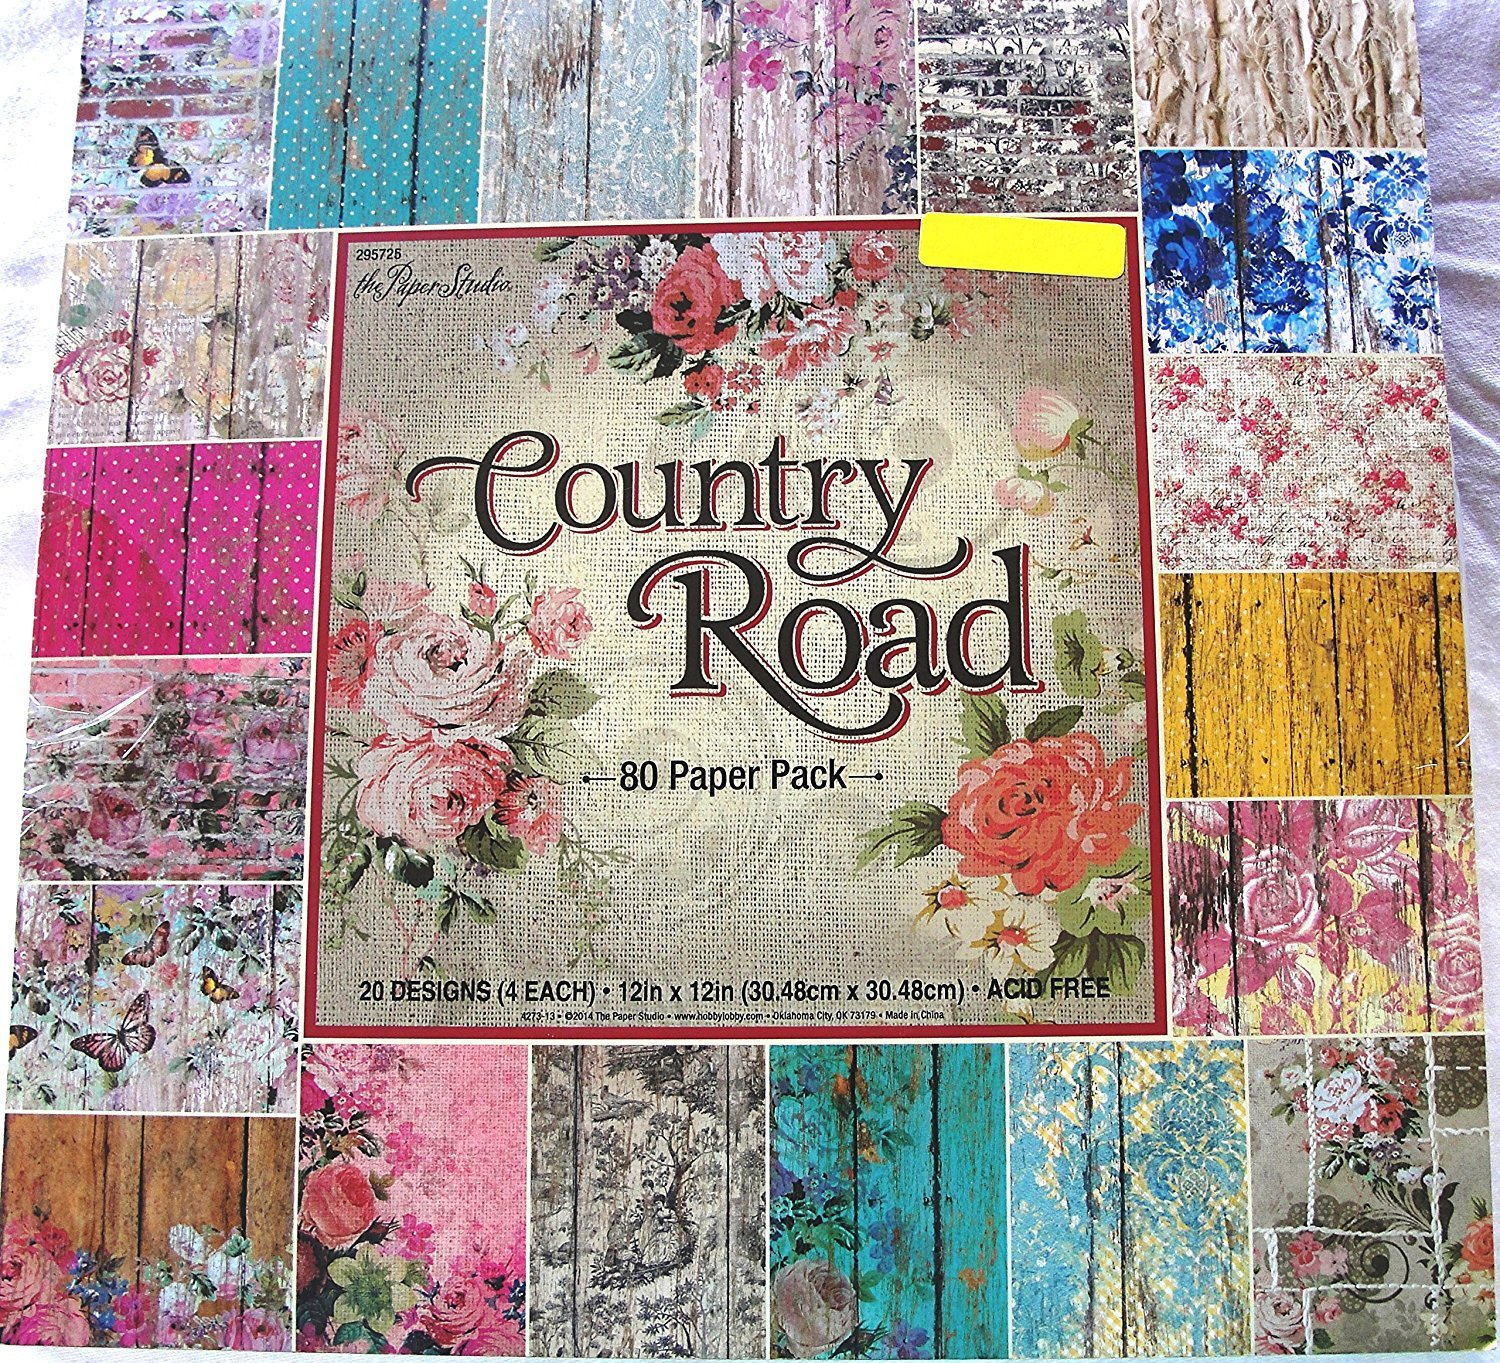 Cream colored cardstock paper studio - Country Road 12x12 The Paper Studio Barnwood Shabby Vintage Floral Damask Scrapbook Cardmaking Paper Pack 80 Sheets